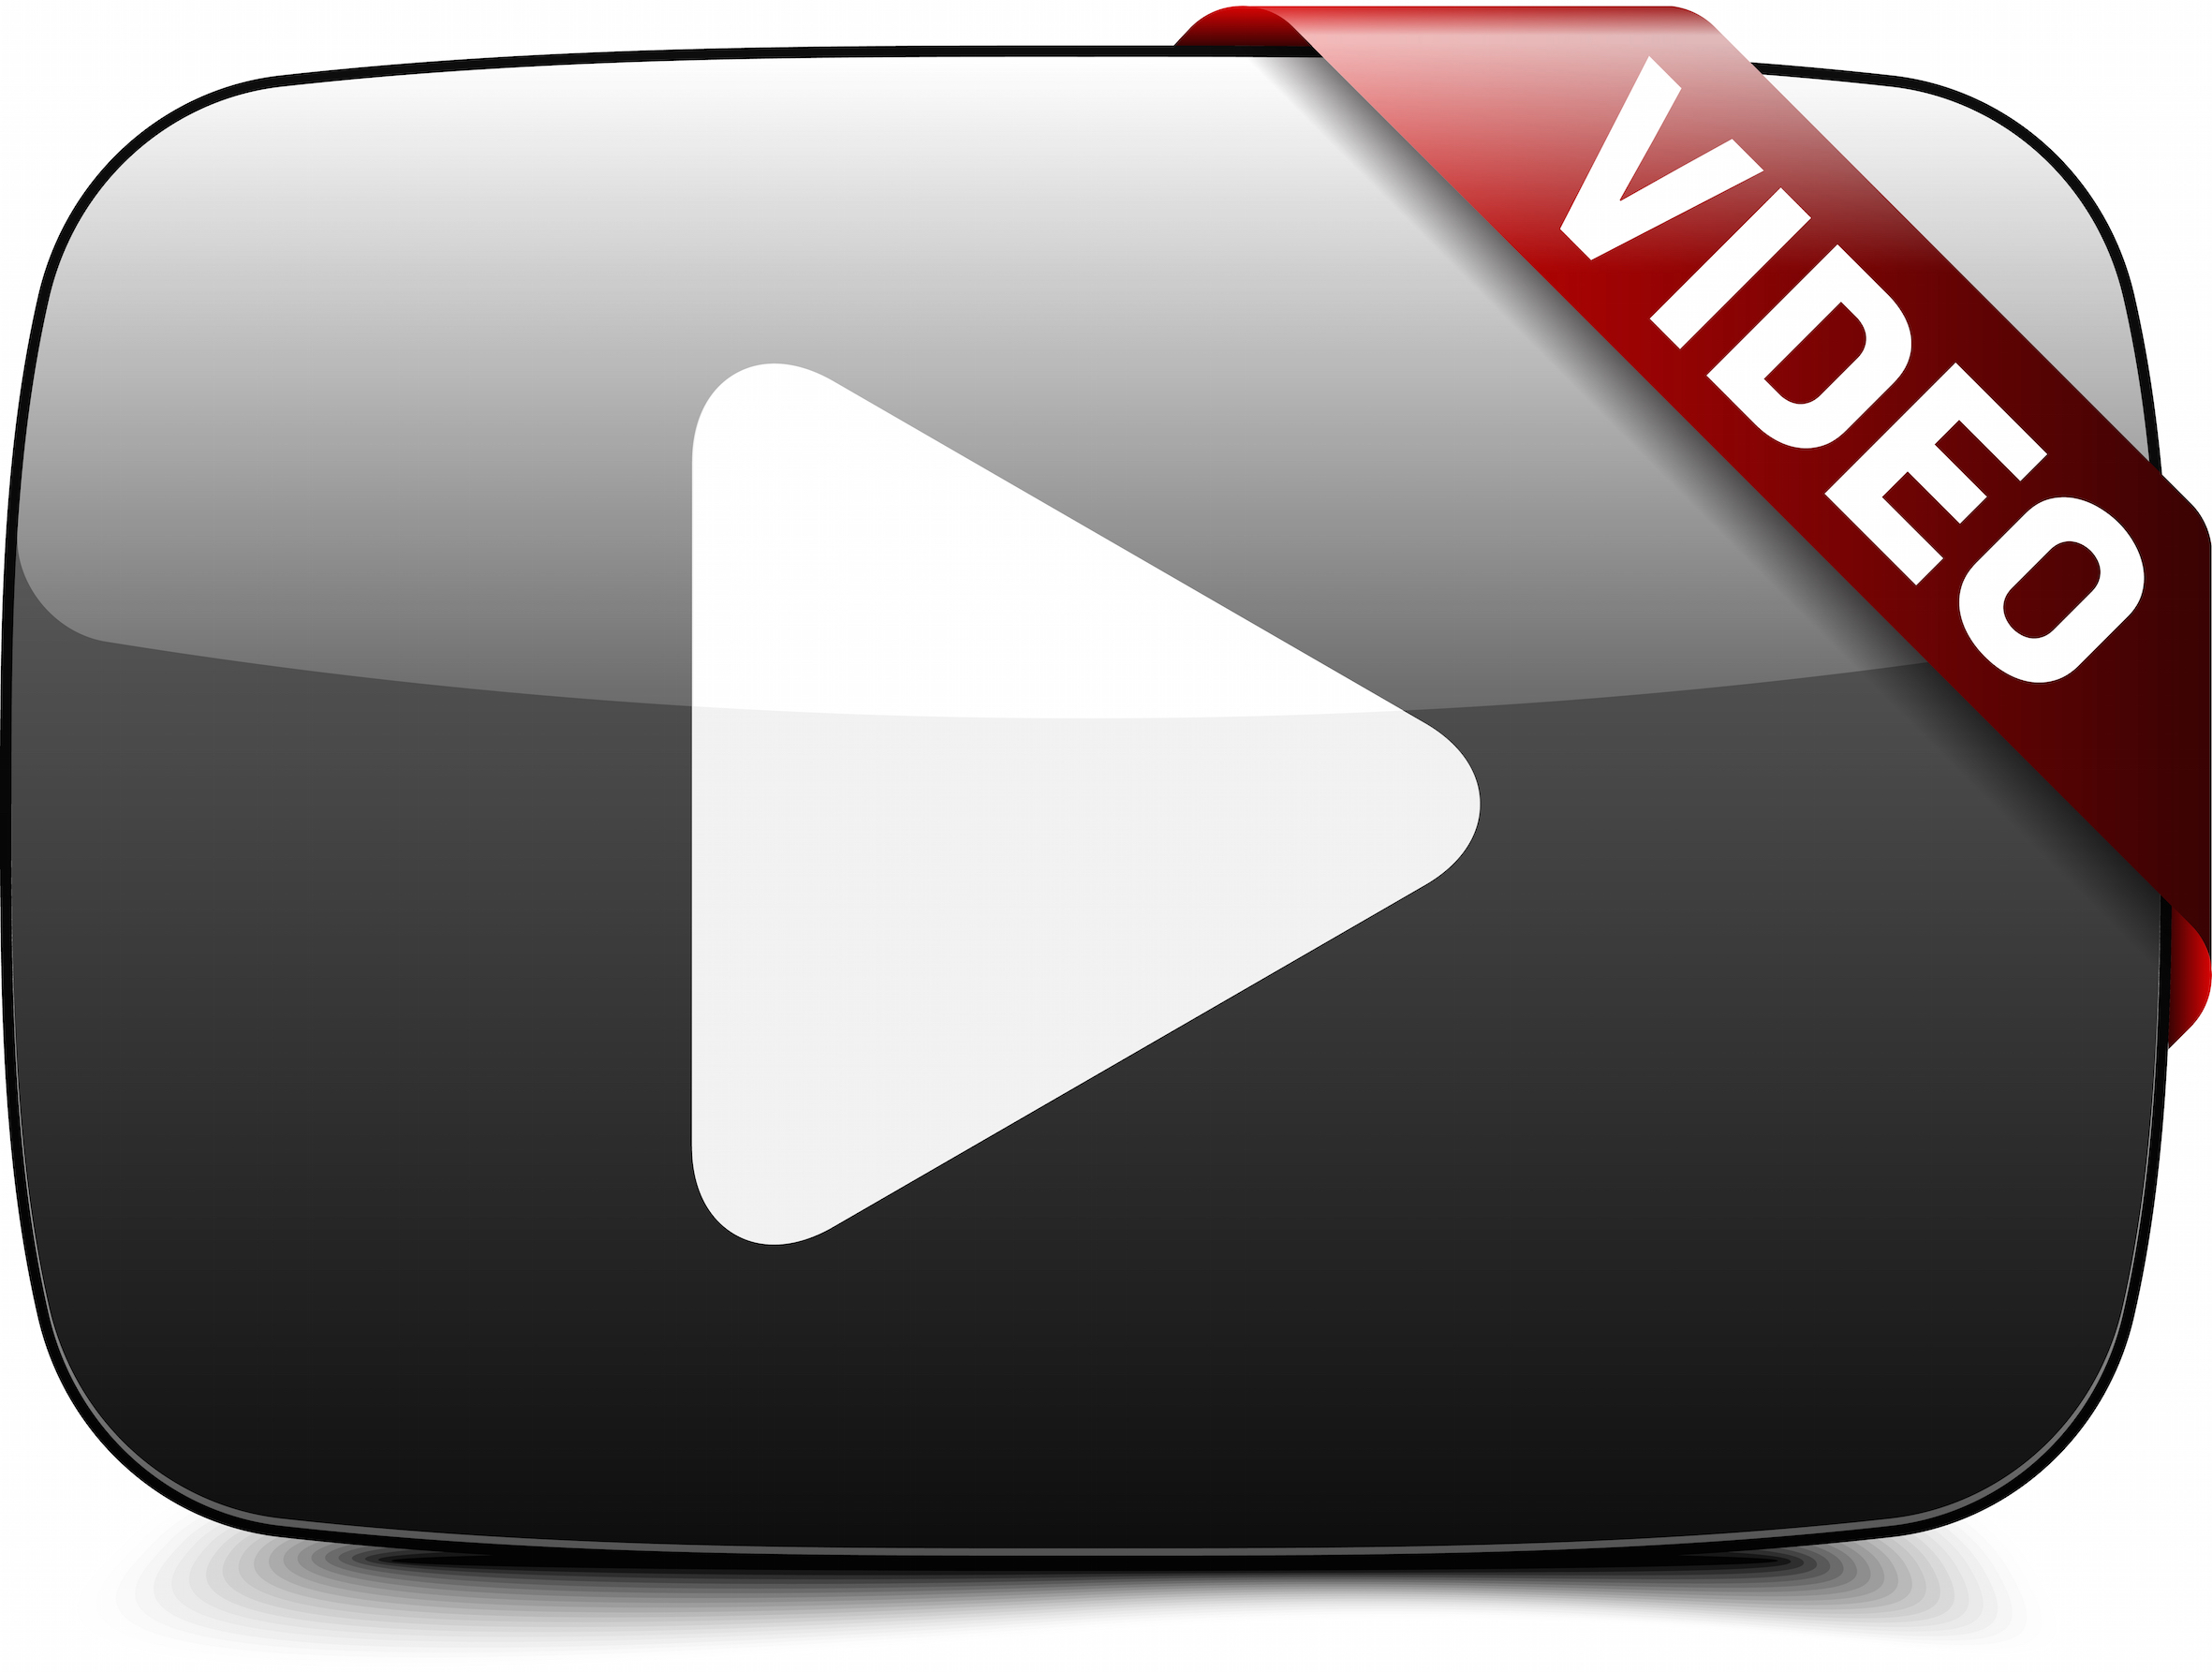 Are You Advertising Your Brand through Videos? You Should!